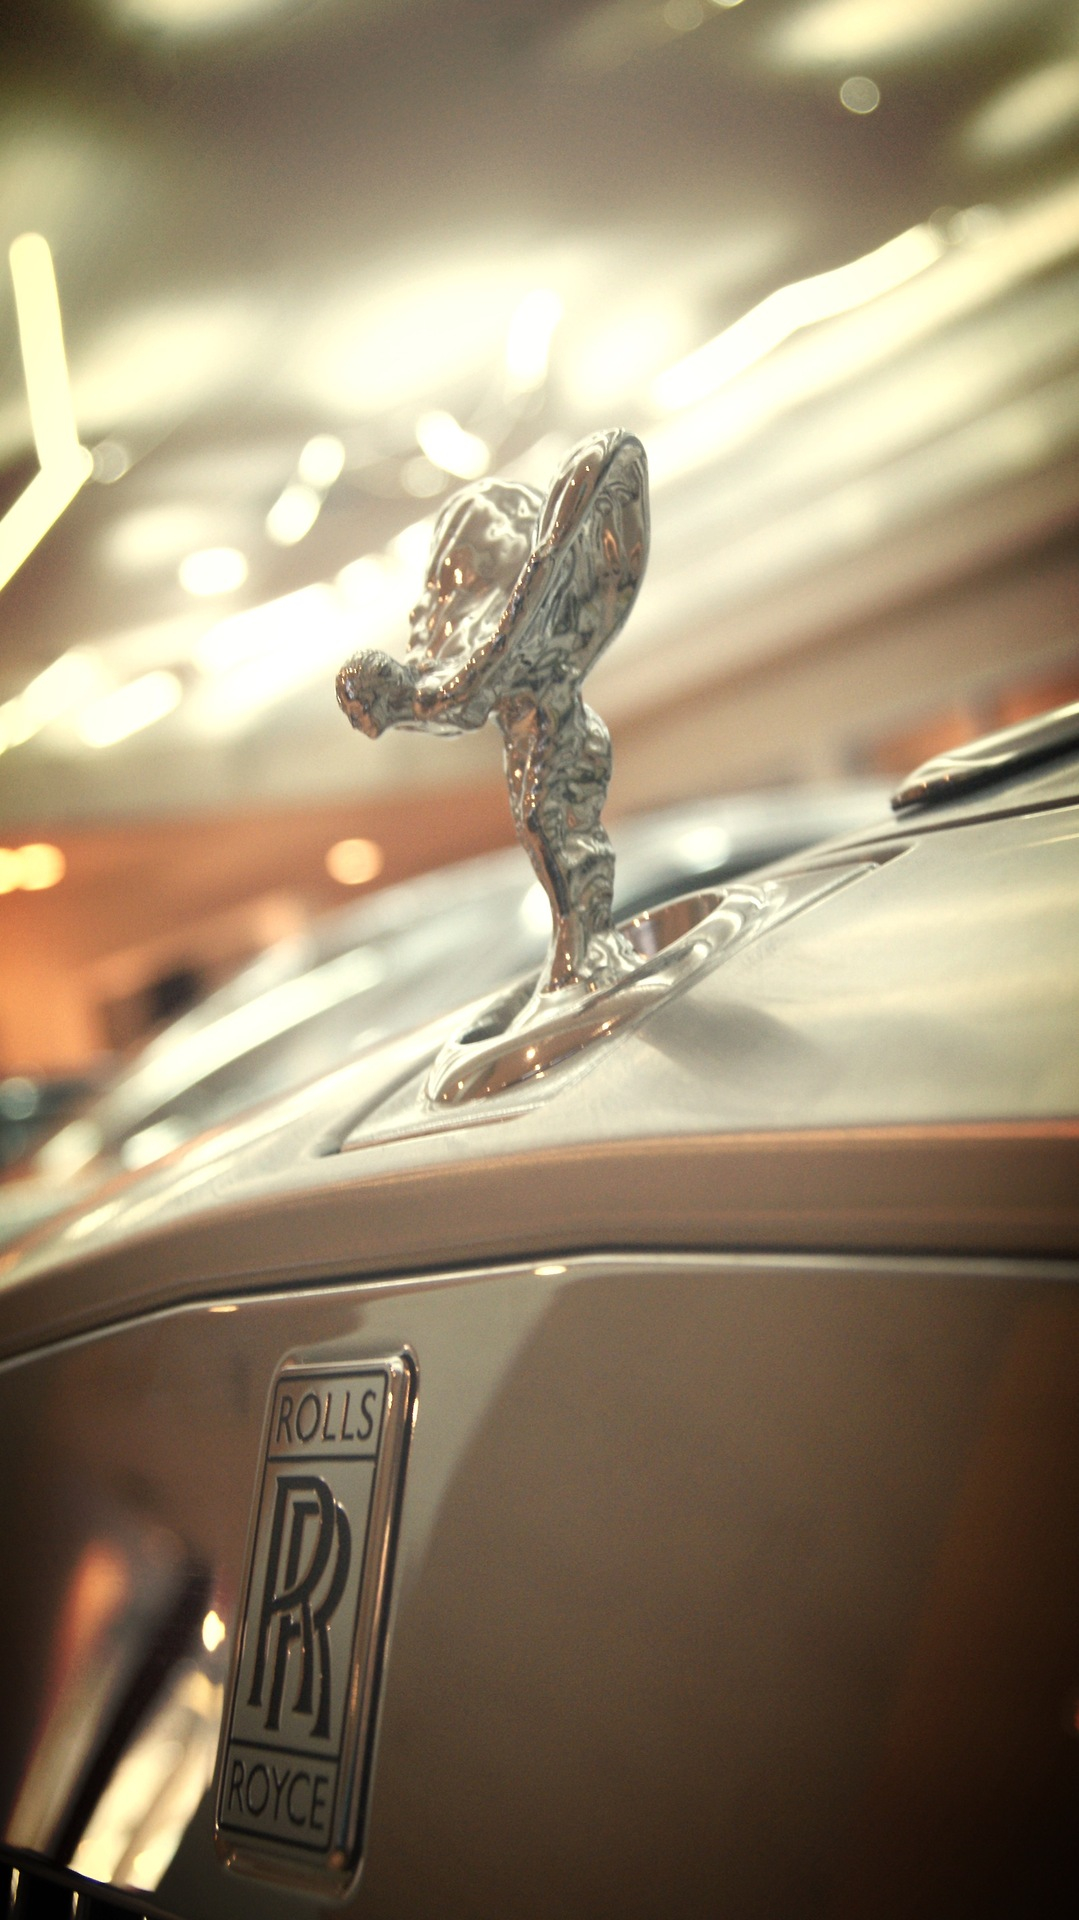 Beautiful-Closeup-of-a-Rolls-Royce-Spirit-of-Ecstasy-Ornament-wallpaper-wp4604111